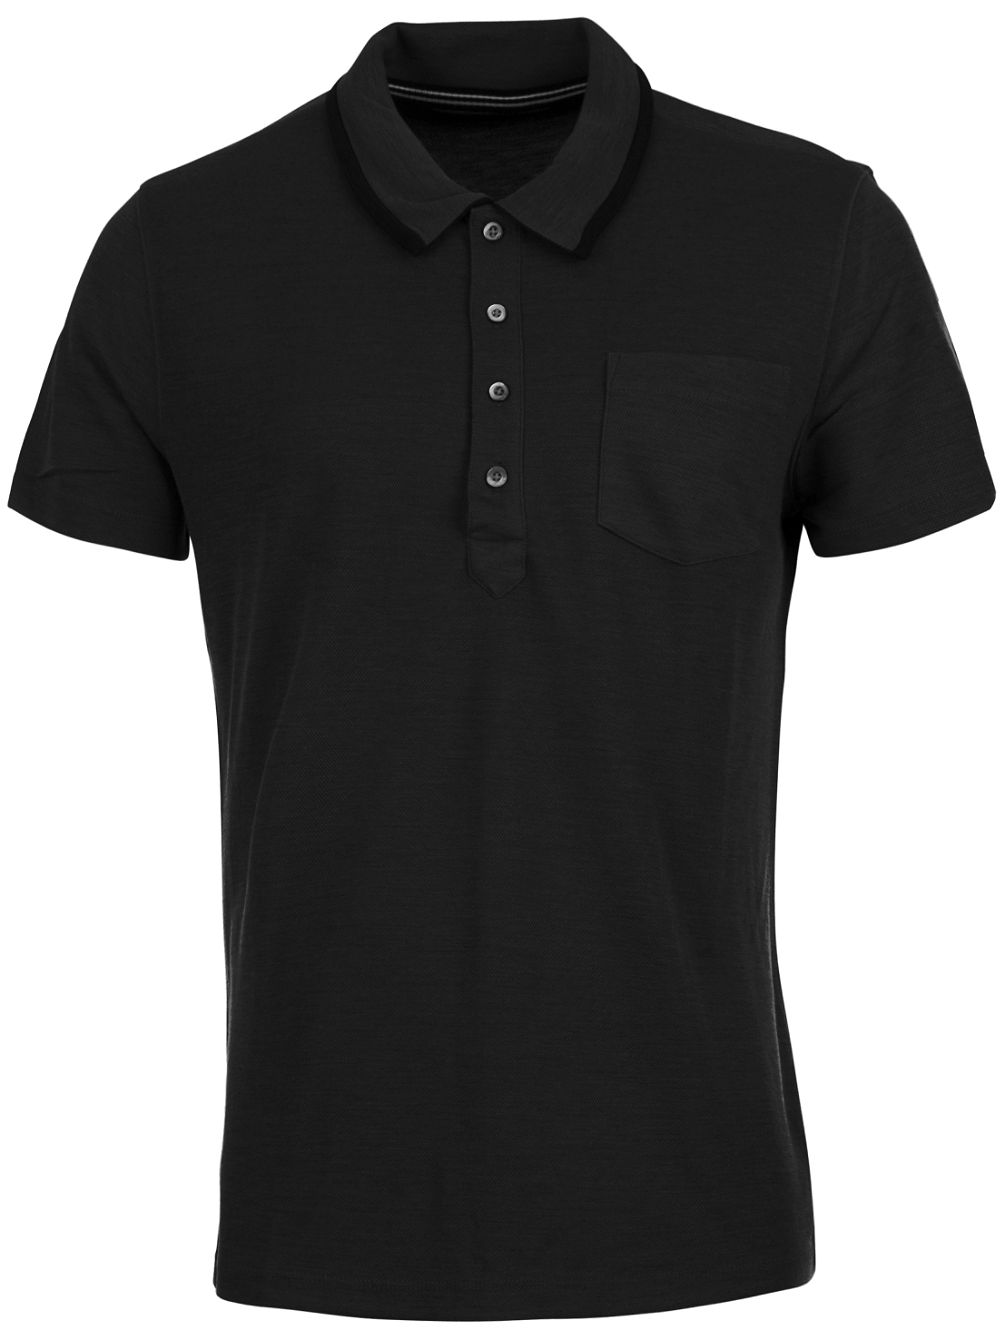 Comfort Piquet Polo